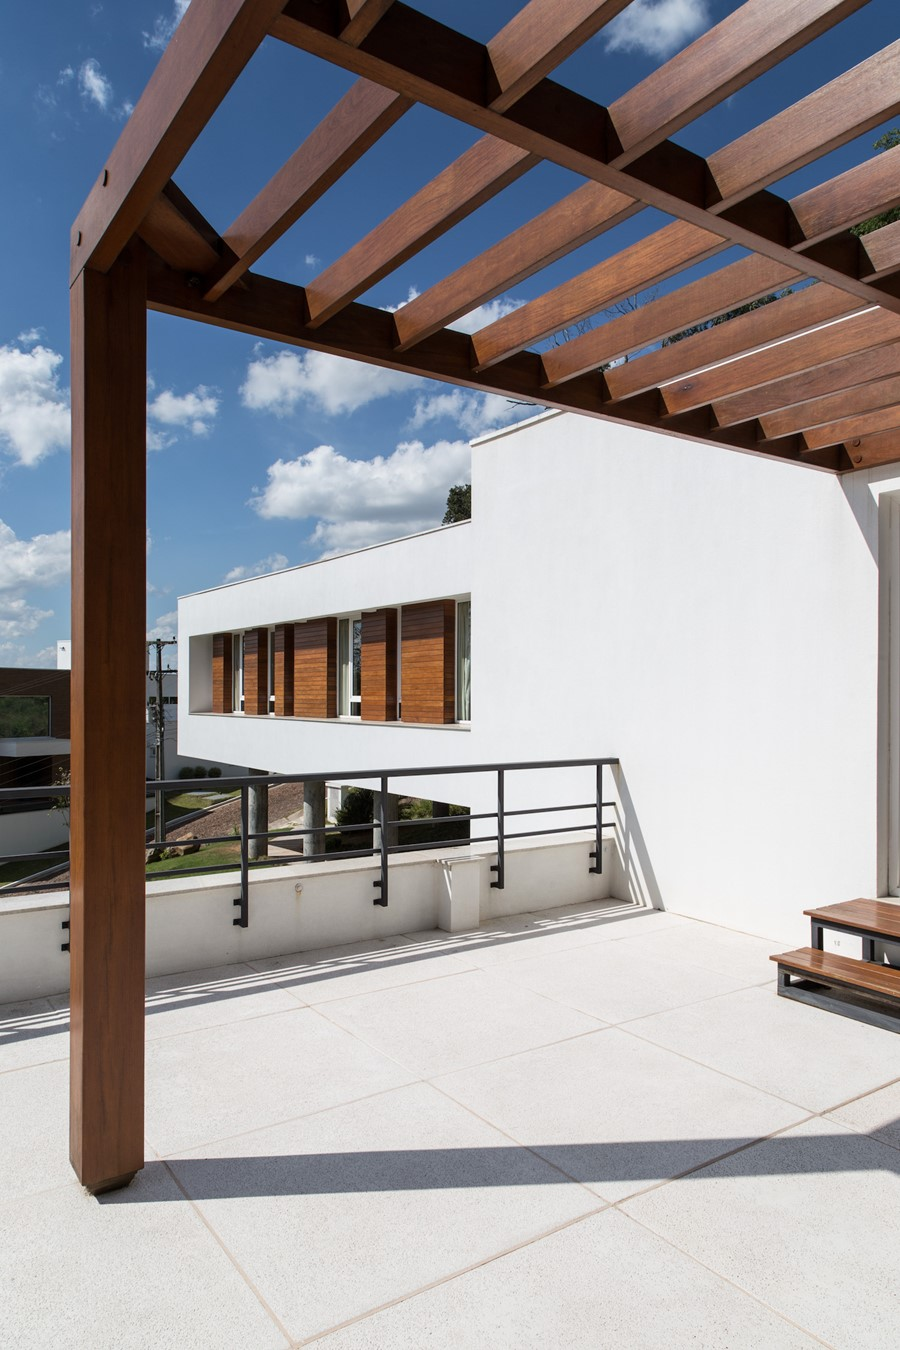 House 4.16.3 by Luciano Lerner Basso 10